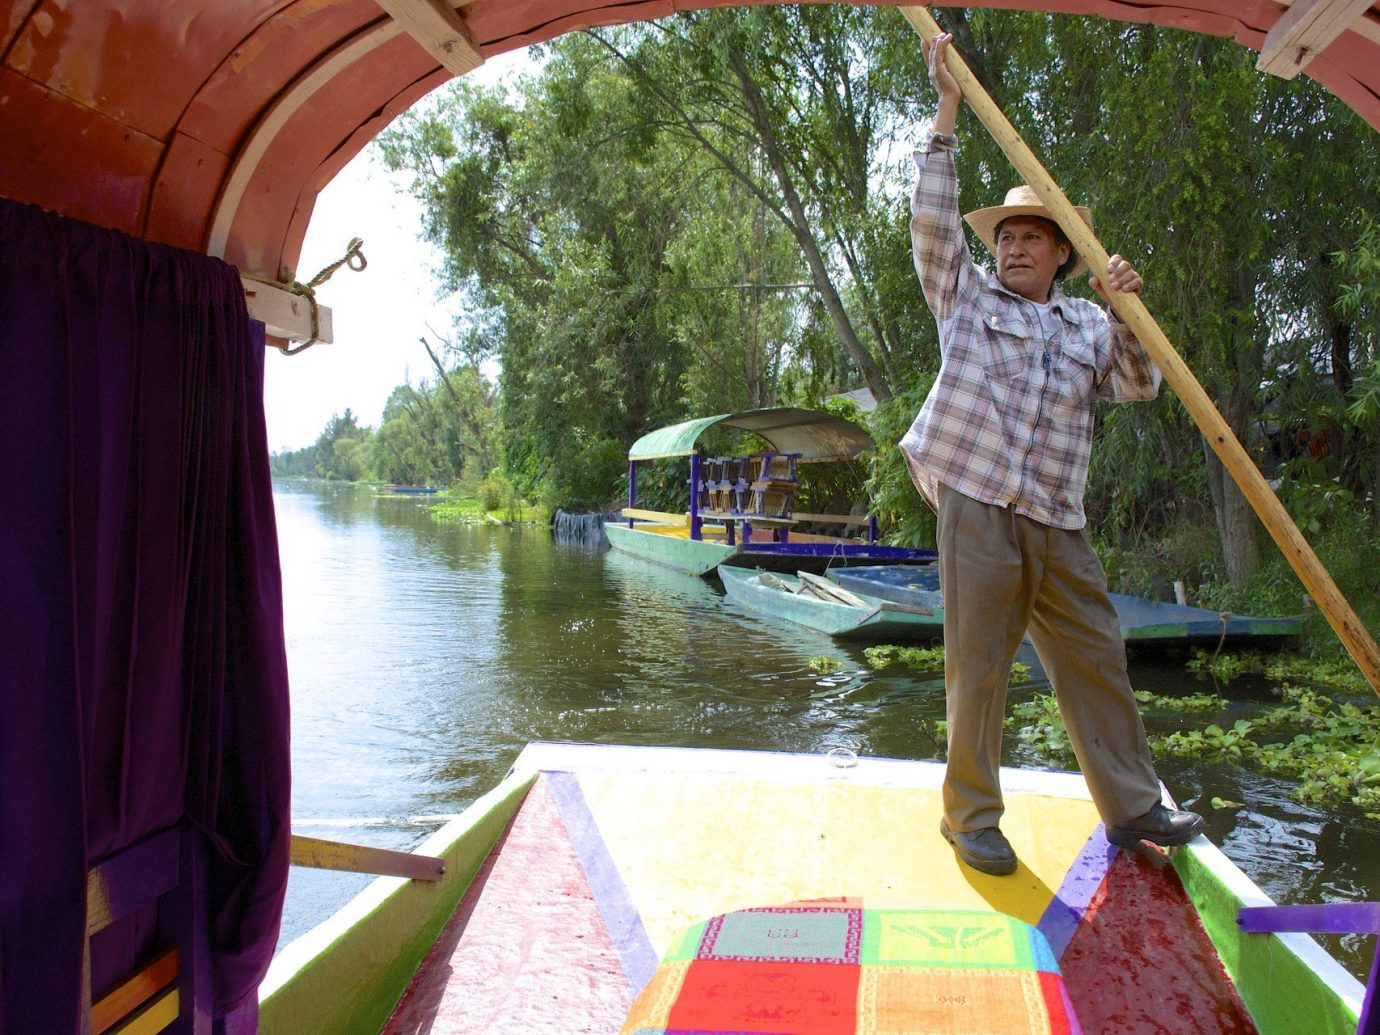 Boats calm City Greenery Lake local locals Mexico City Nature people remote River rowers Rowing serene trees Trip Ideas water outdoor leisure vacation swimming pool vehicle Boat